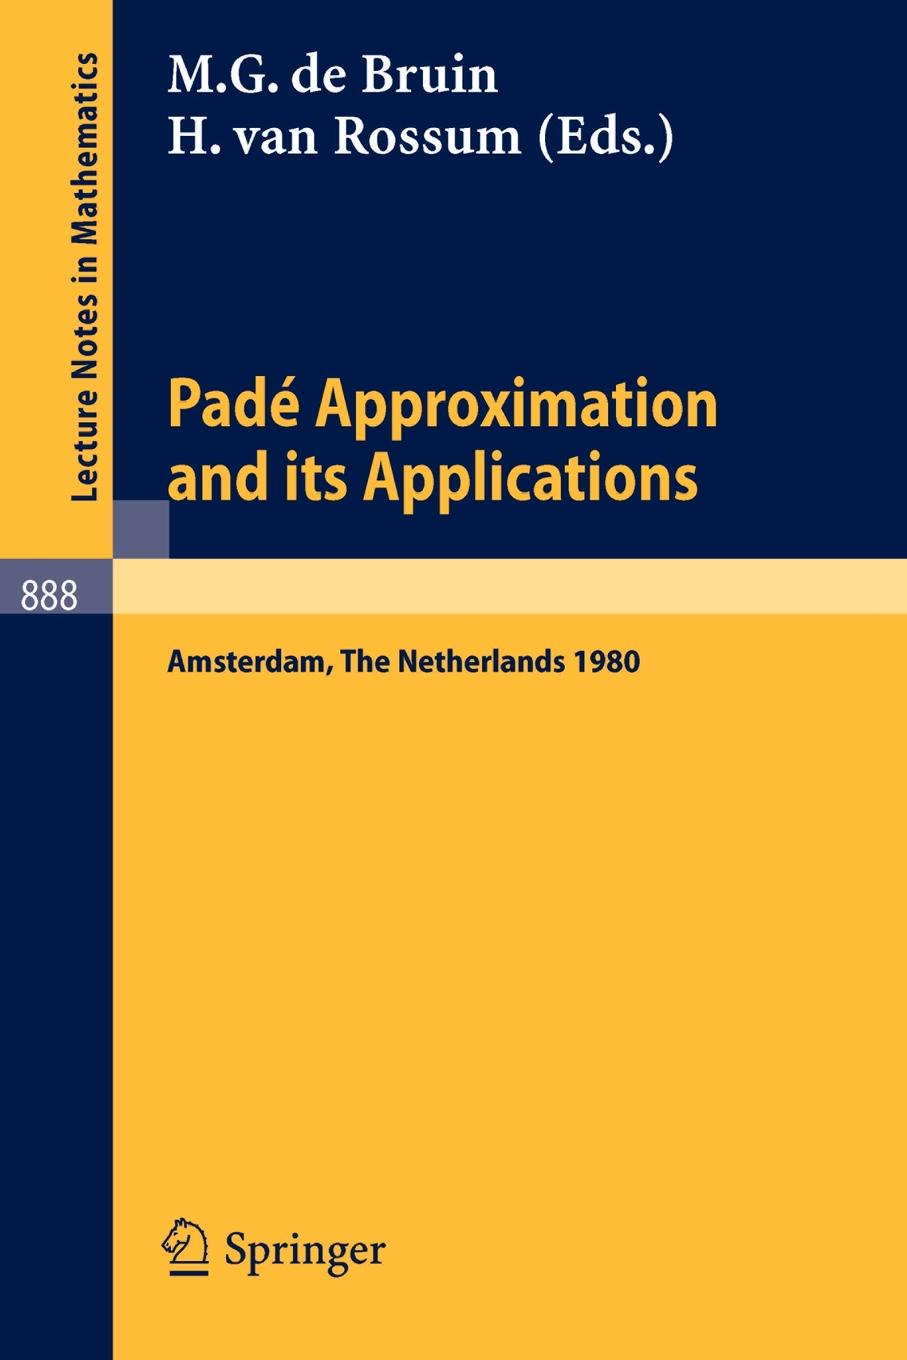 Pade Approximation and its Applications, Amsterdam 1980. Proceedings of a Conference Held in Amsterdam, The Netherlands, October 29-31, 1980 sigala amsterdam